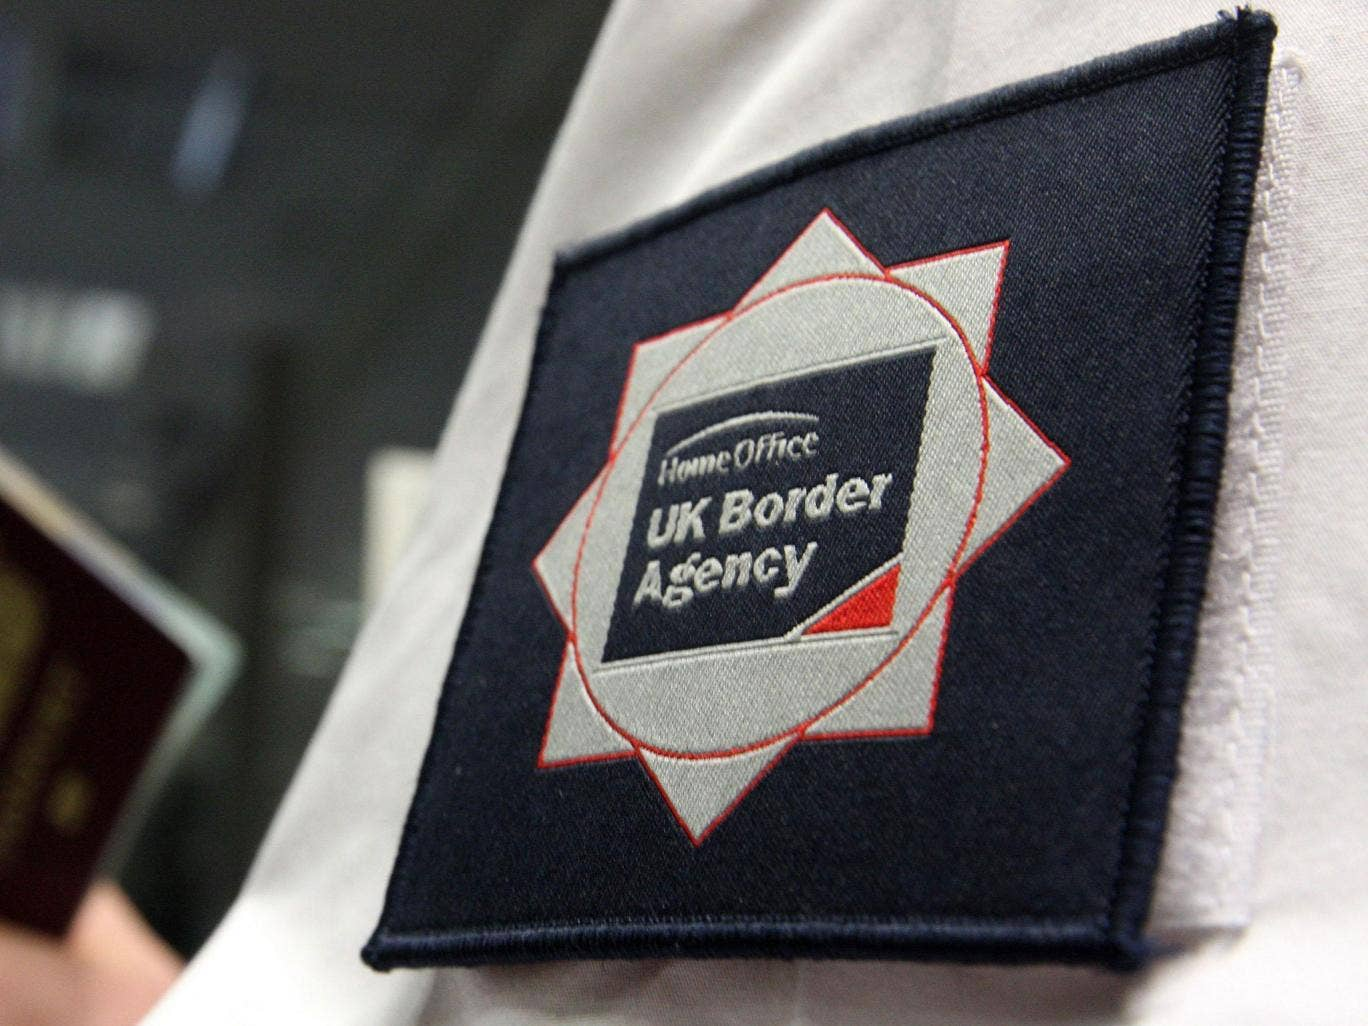 A refugee has gone on hunger strike to demand that the UK Border Agency returns his passport - and an unnamed NHS Trust has asked a court to decide if he can be forcibly fed